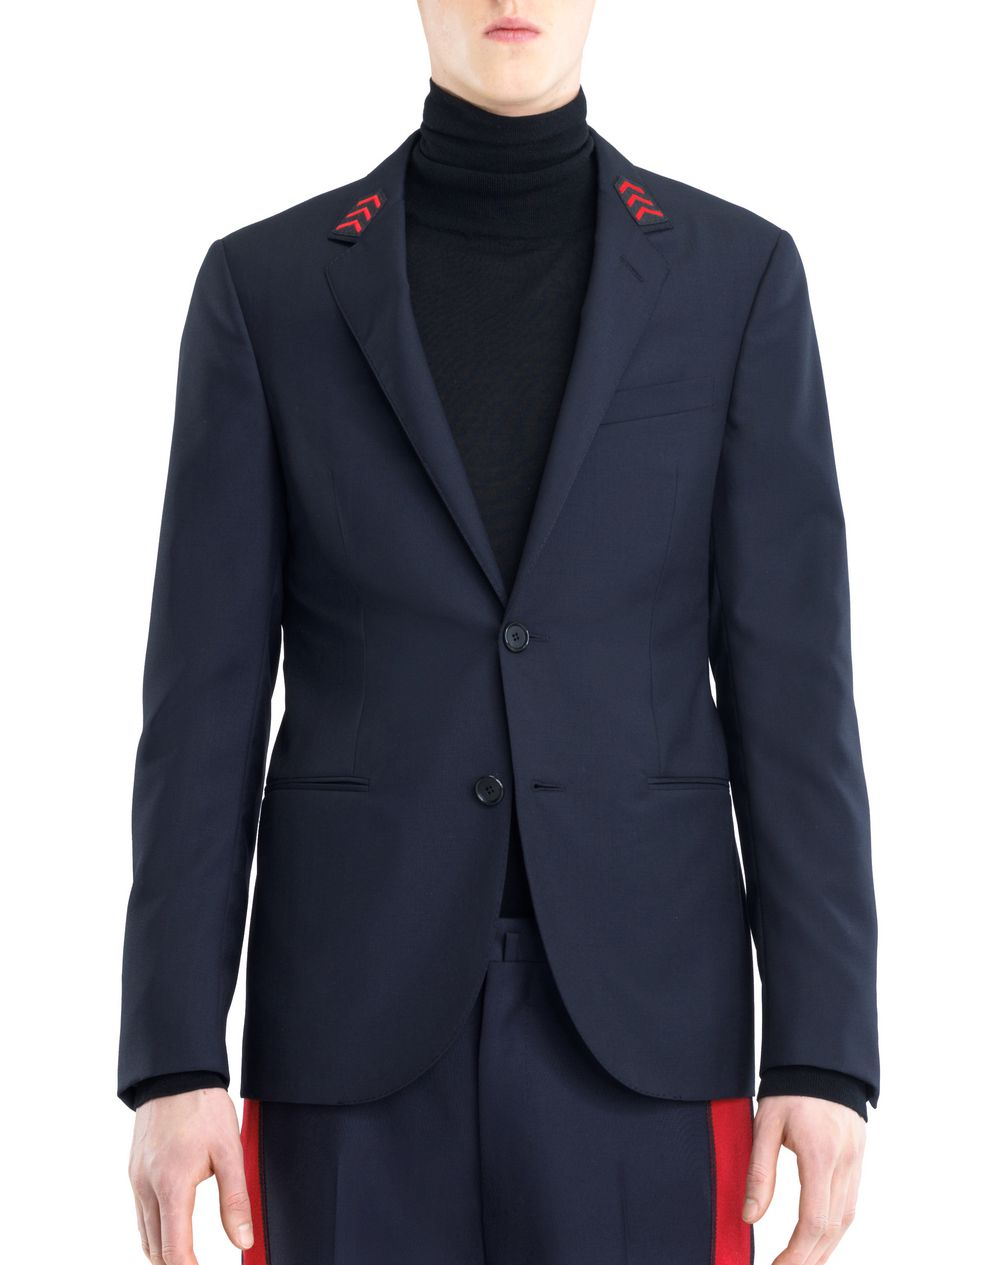 SLIM-FIT JACKET WITH PATCHES - Lanvin